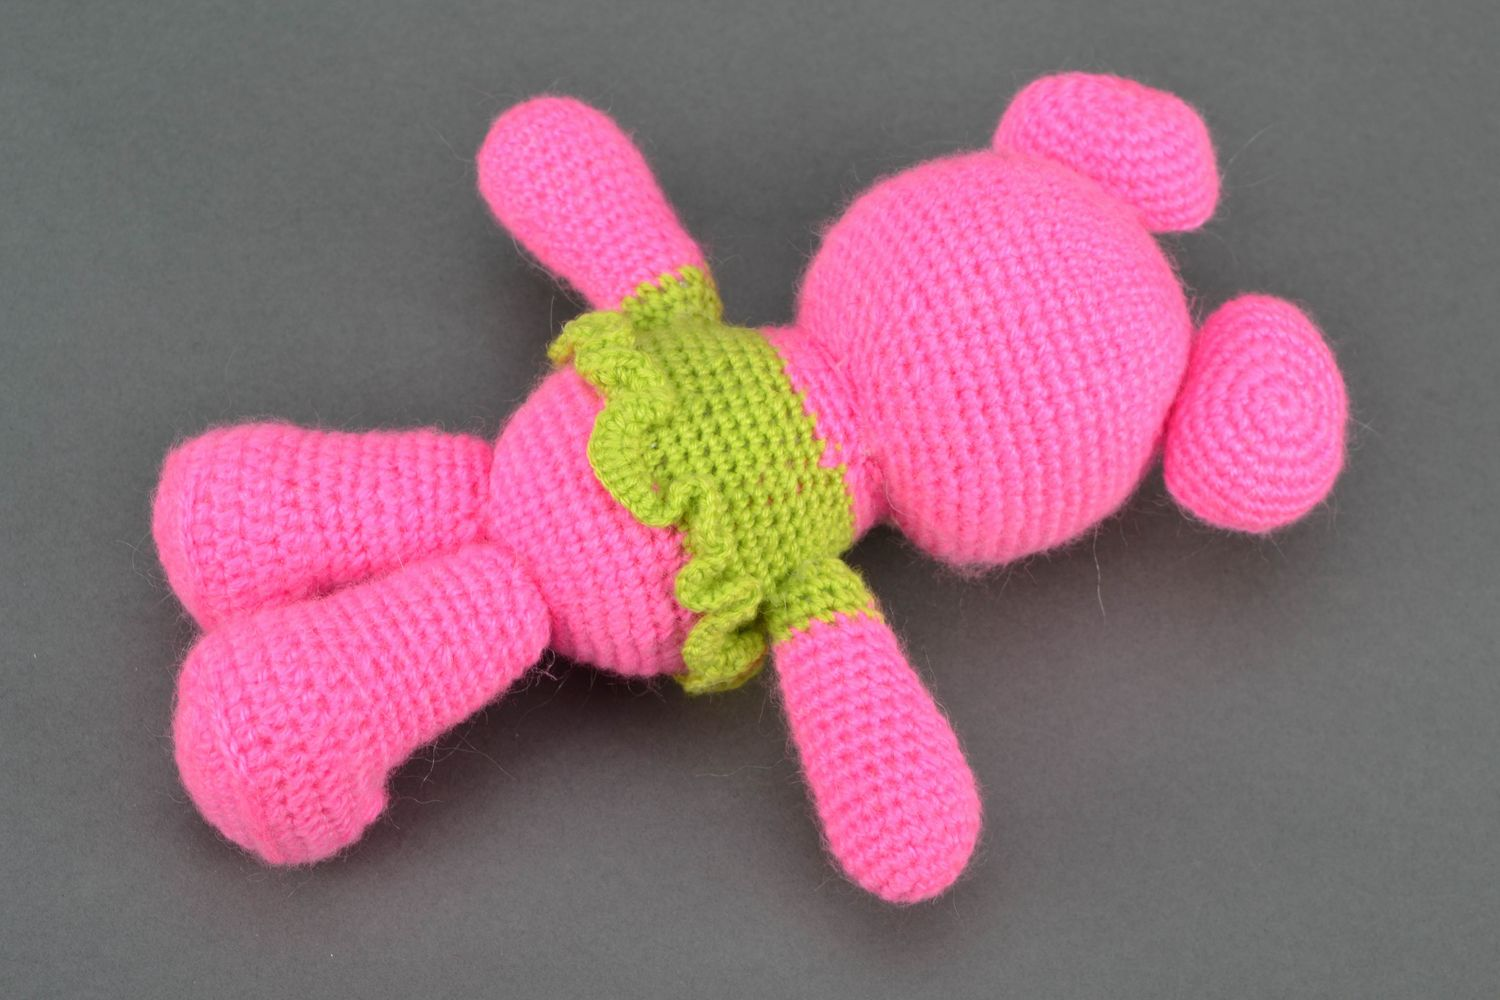 Soft crochet toy Pink Bear in Jacket photo 4